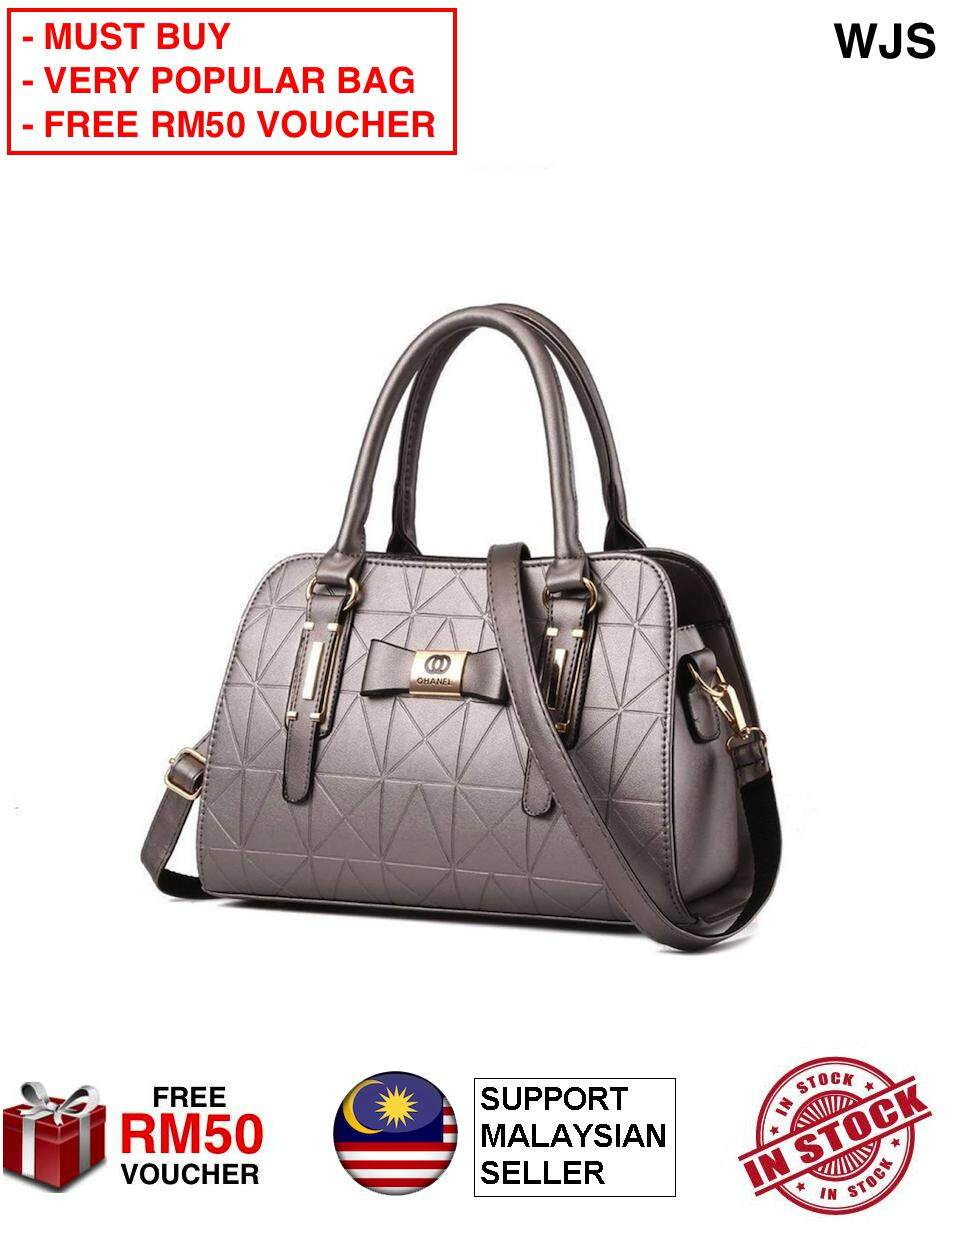 (VERY POPULAR BAG) WJS Ohanel Channel Women Handbag Premium Branded Handbag Hand Bag Quality Fashion Handbag with Premium Material Handbeg Bag Perempuan MULTICOLOR (FREE RM 50 VOUCHER)